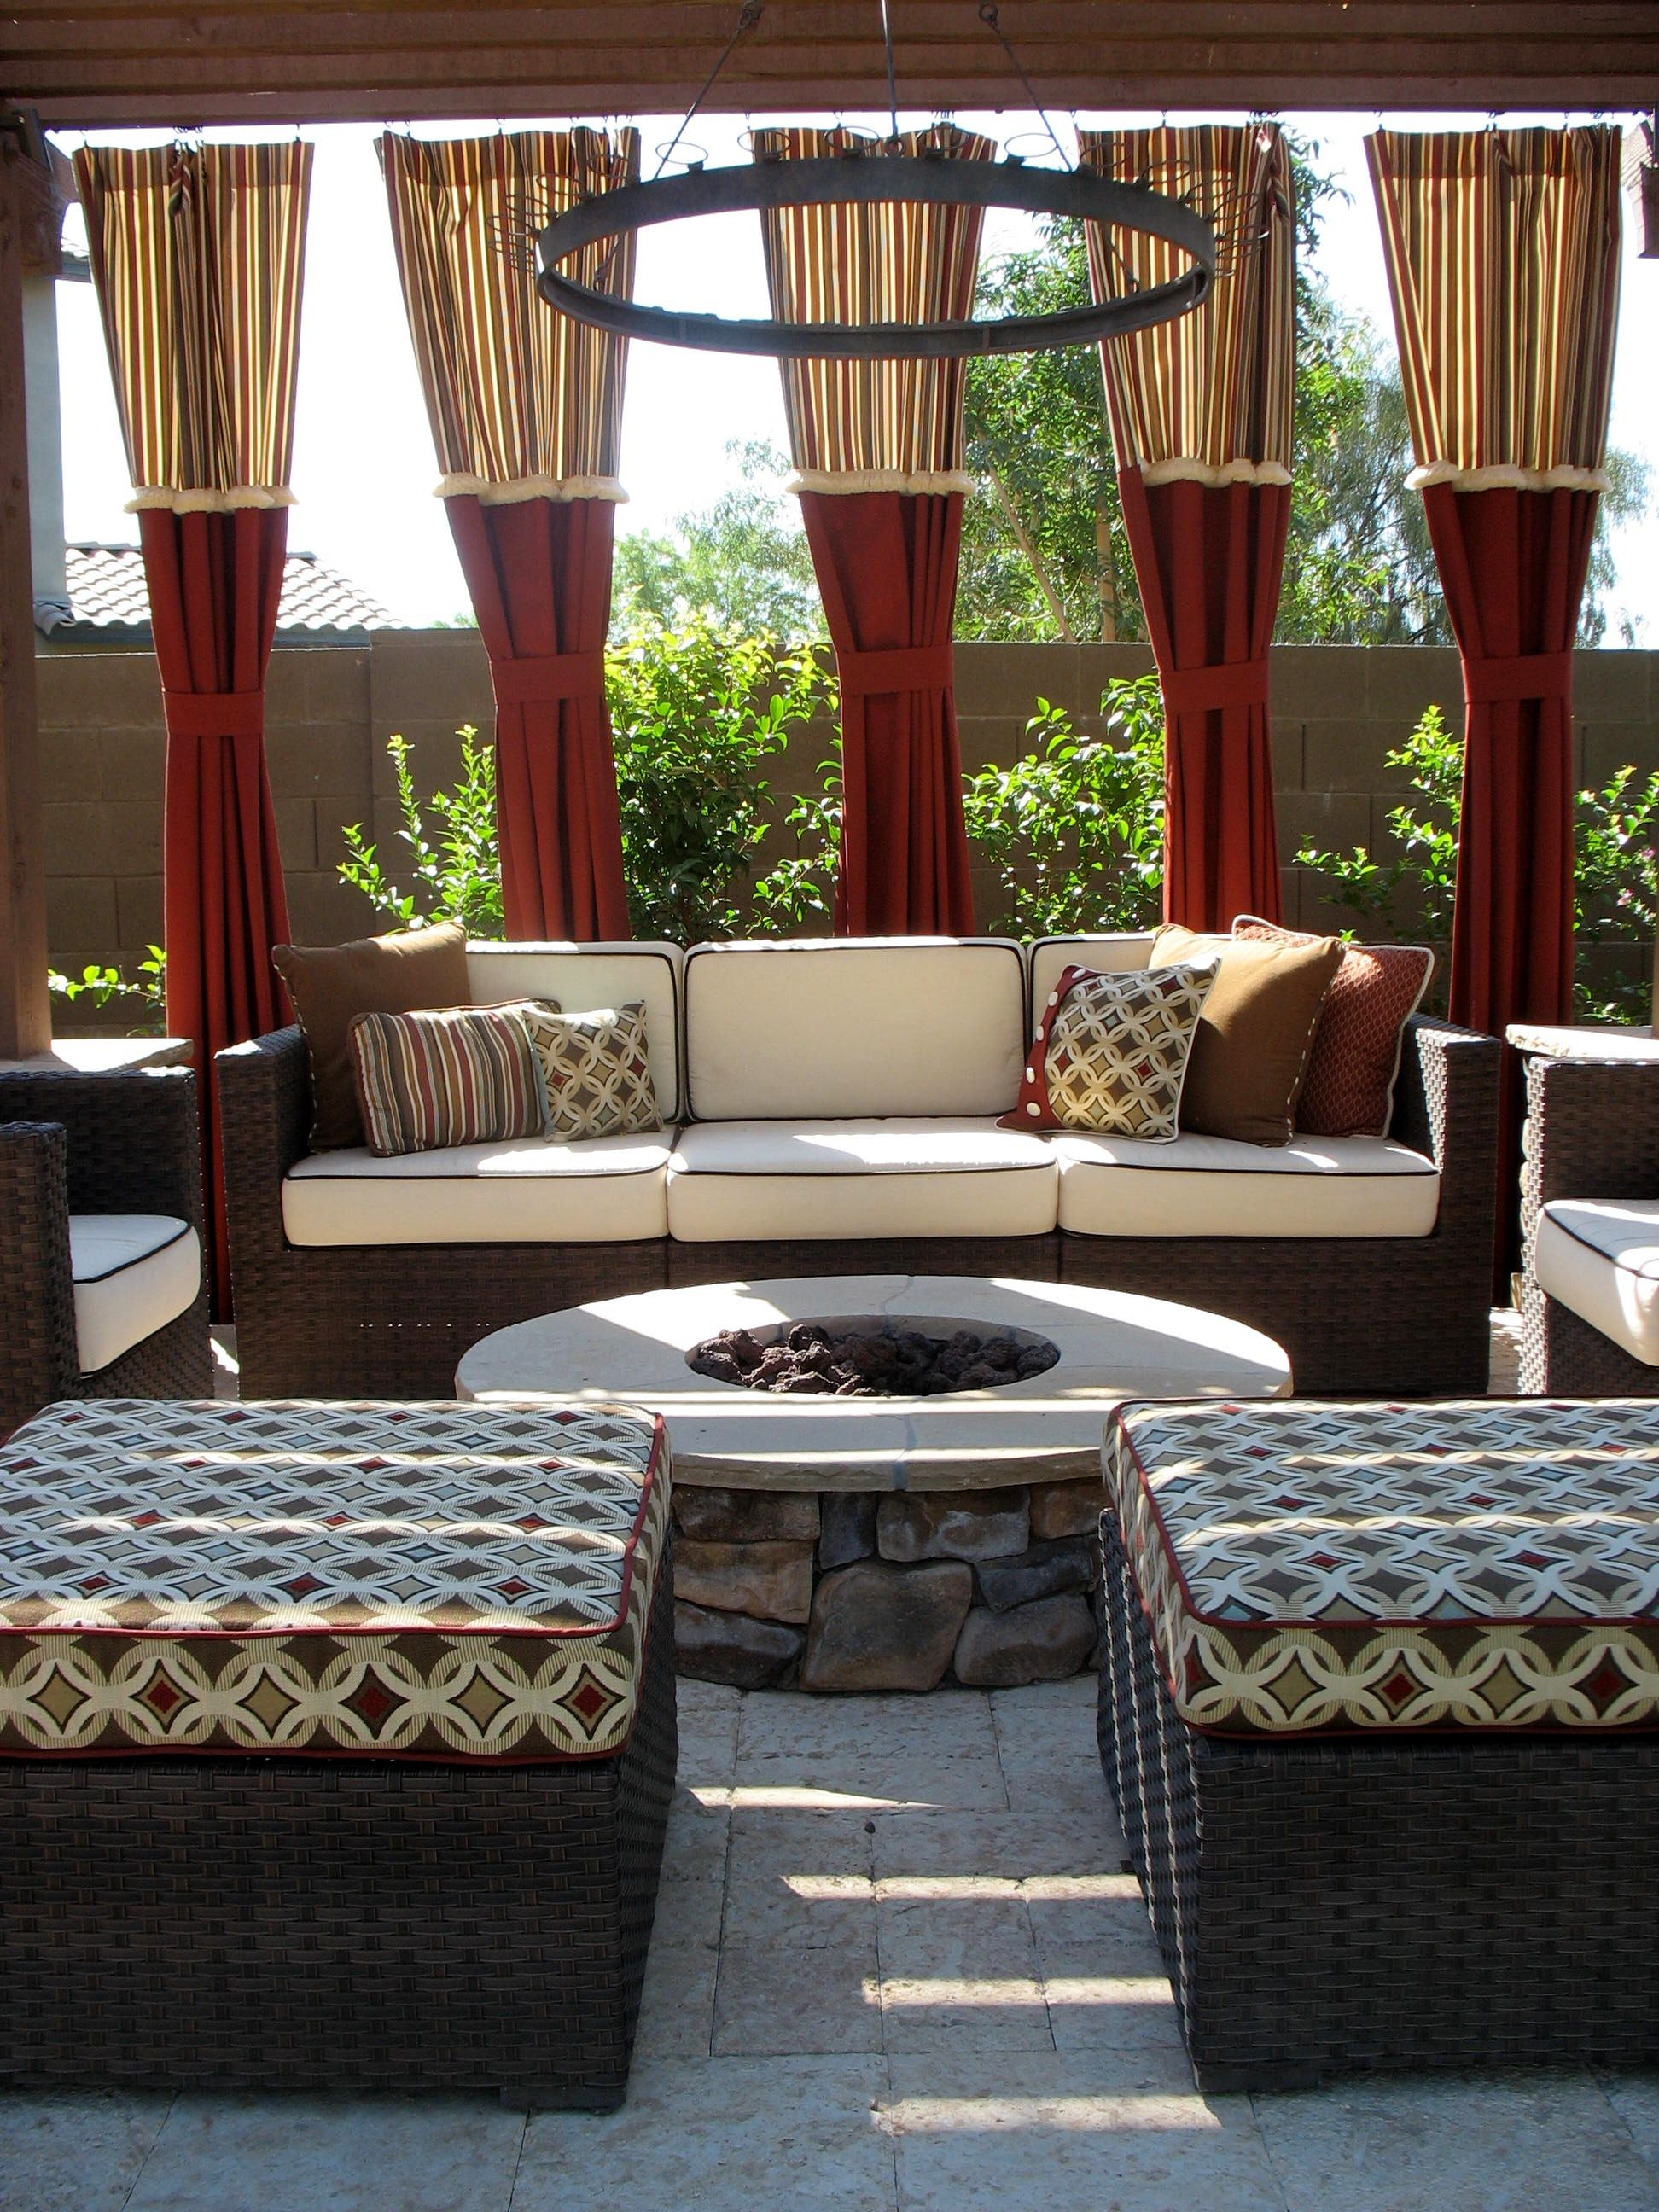 Backyard Pergola With Firepit Drapes Cushions And